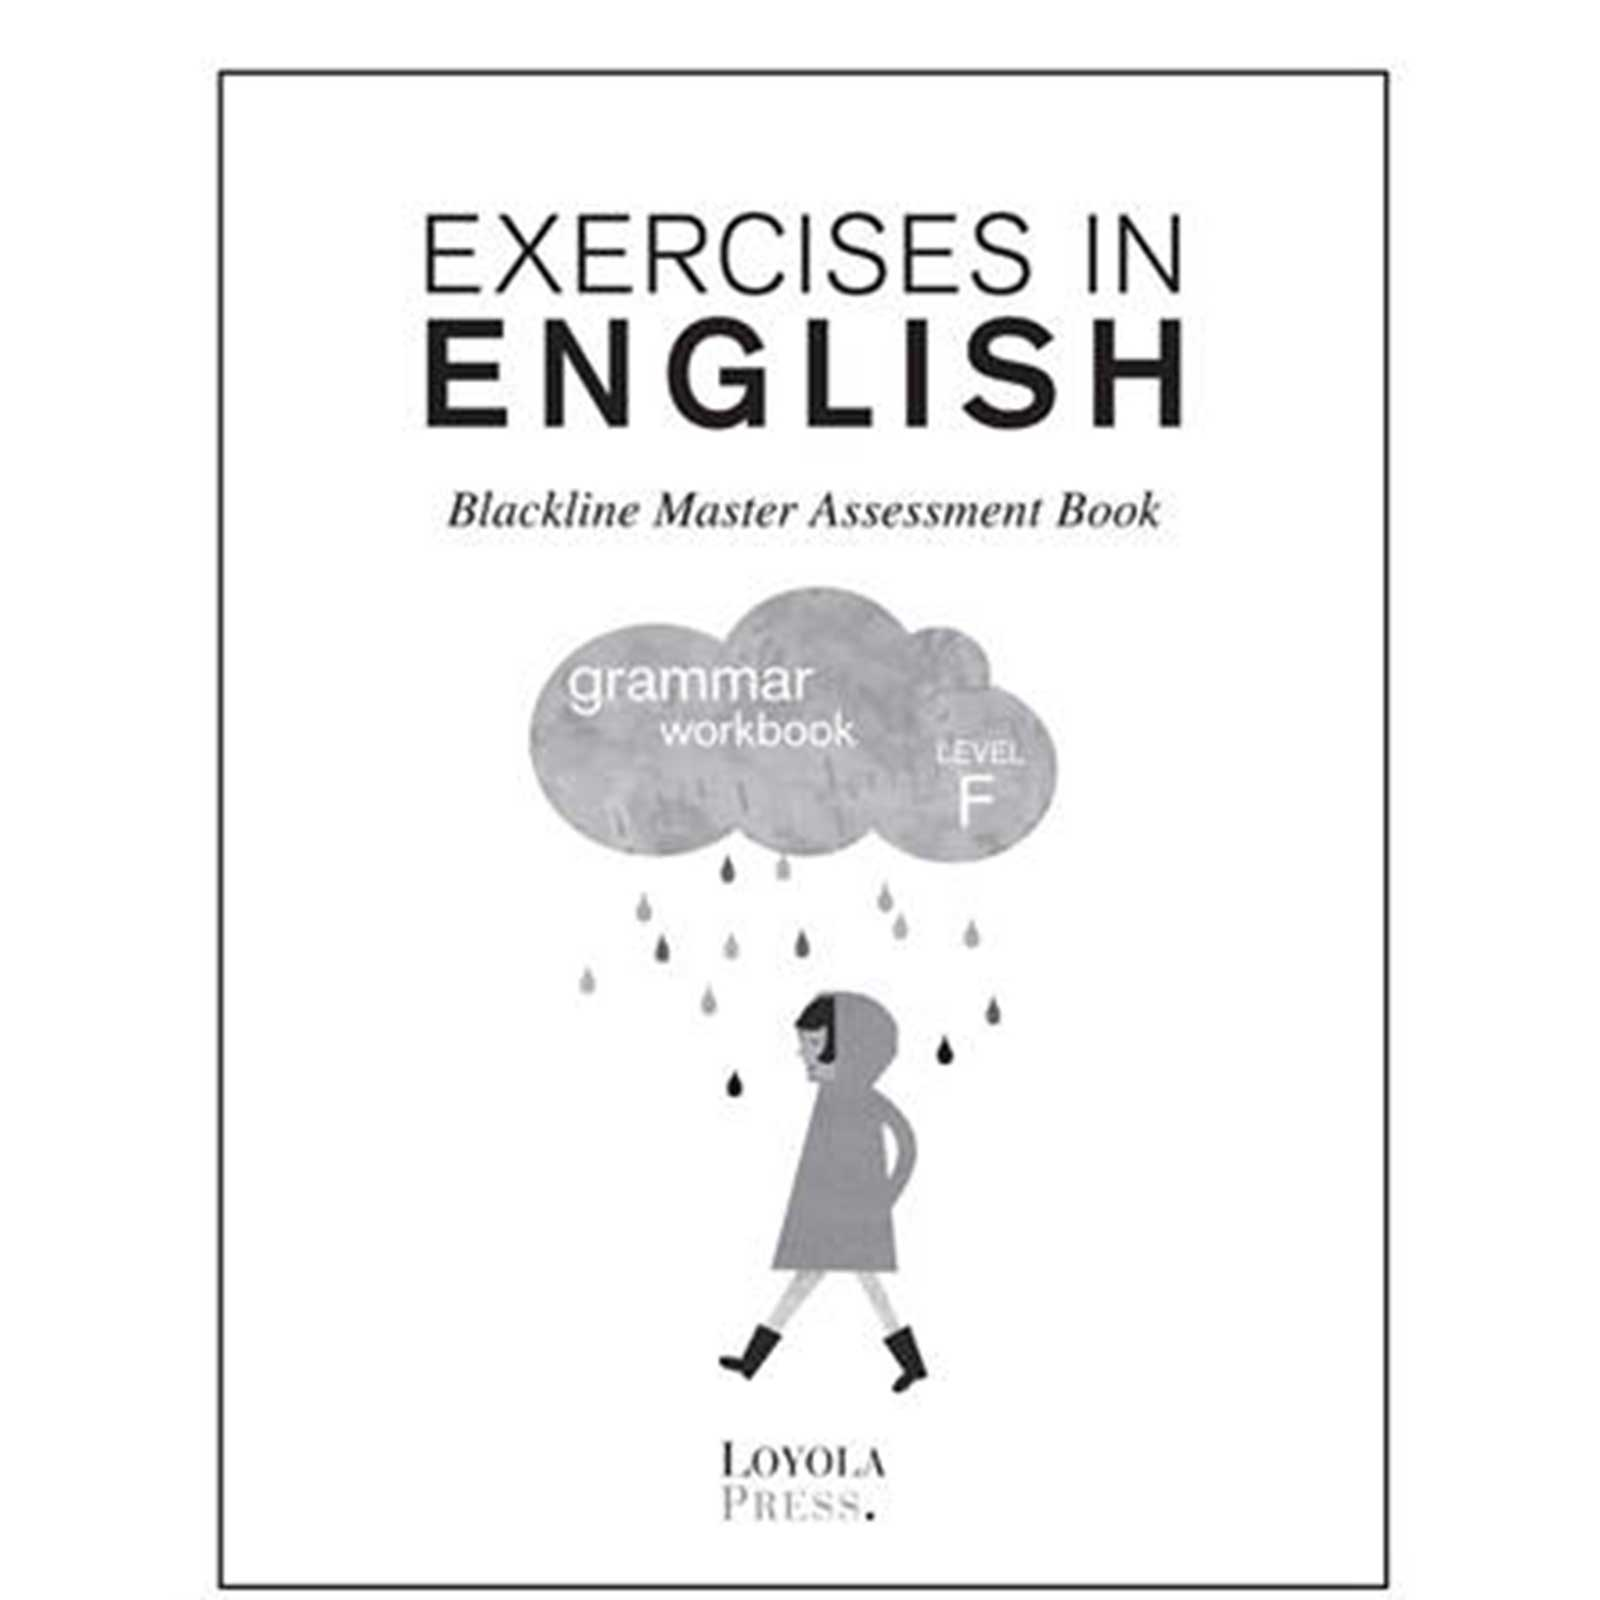 2013 Exercises in English Level F: Grade 6 Assessment Book